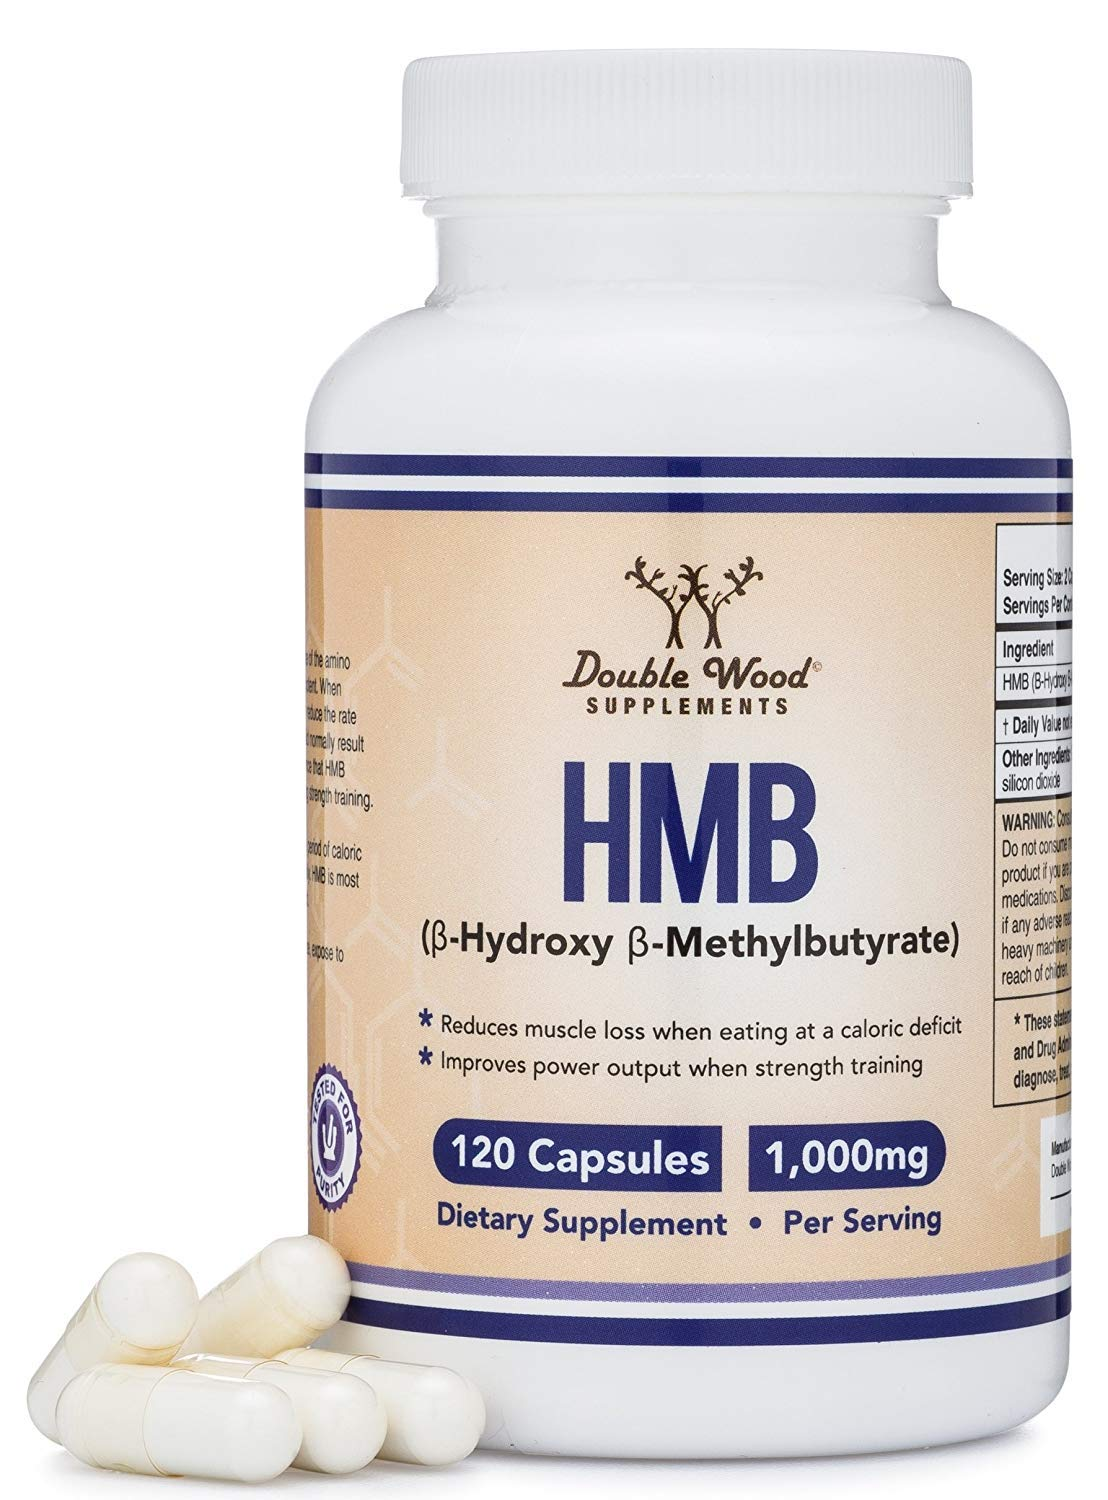 HMB Supplement, Third Party Tested, Made in USA, 120 Capsules, 1000mg per serving, 500mg per capsule.